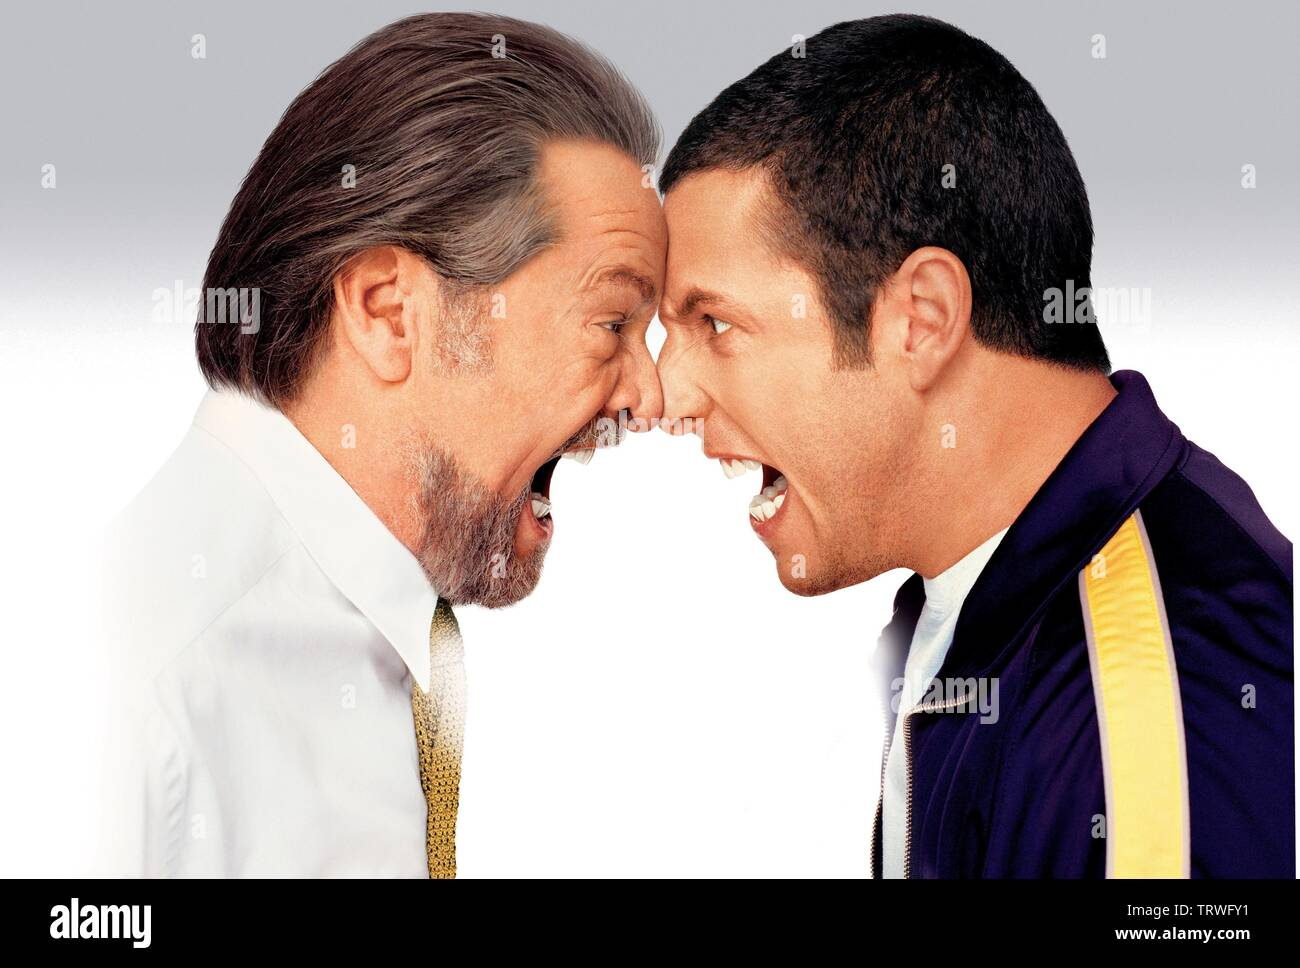 Adam Sandler And Jack Nicholson In Anger Management 2003 Copyright Editorial Use Only No Merchandising Or